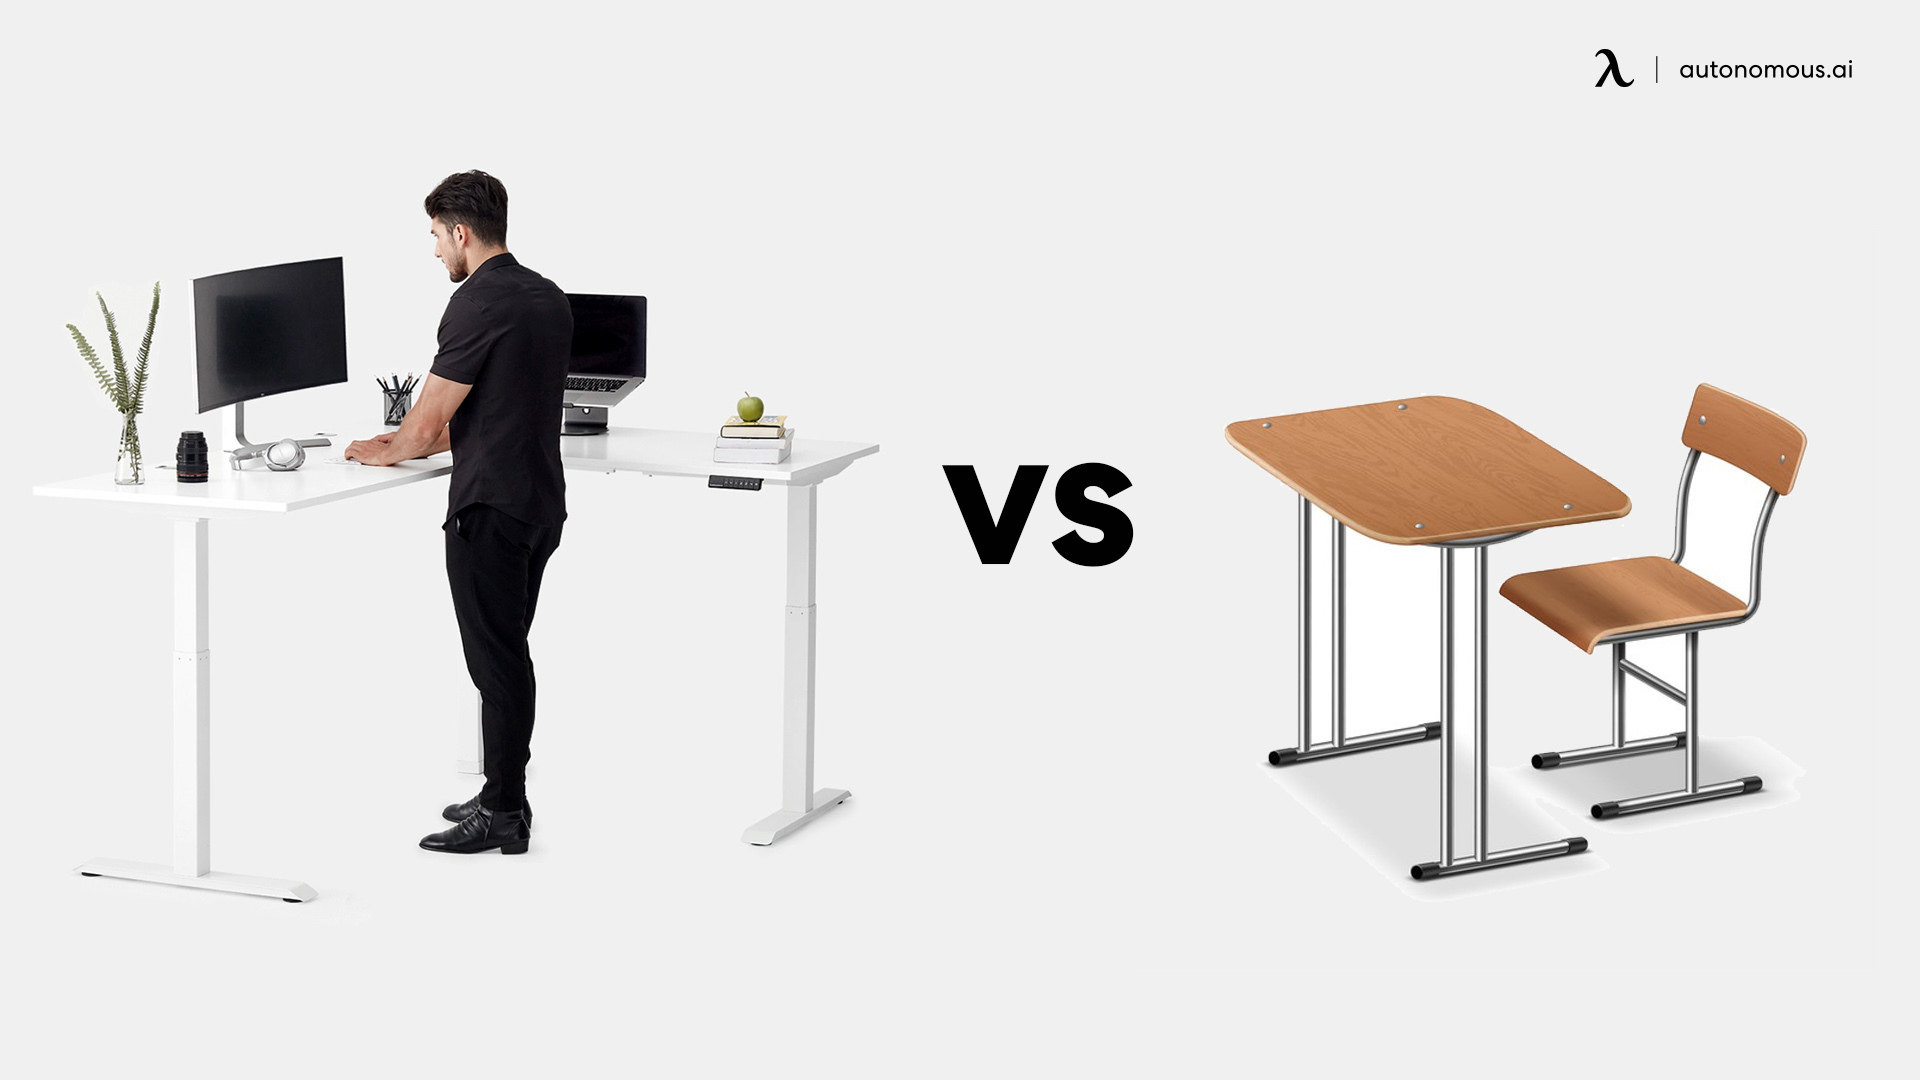 Why Should You Use an L-shaped Office Desk?